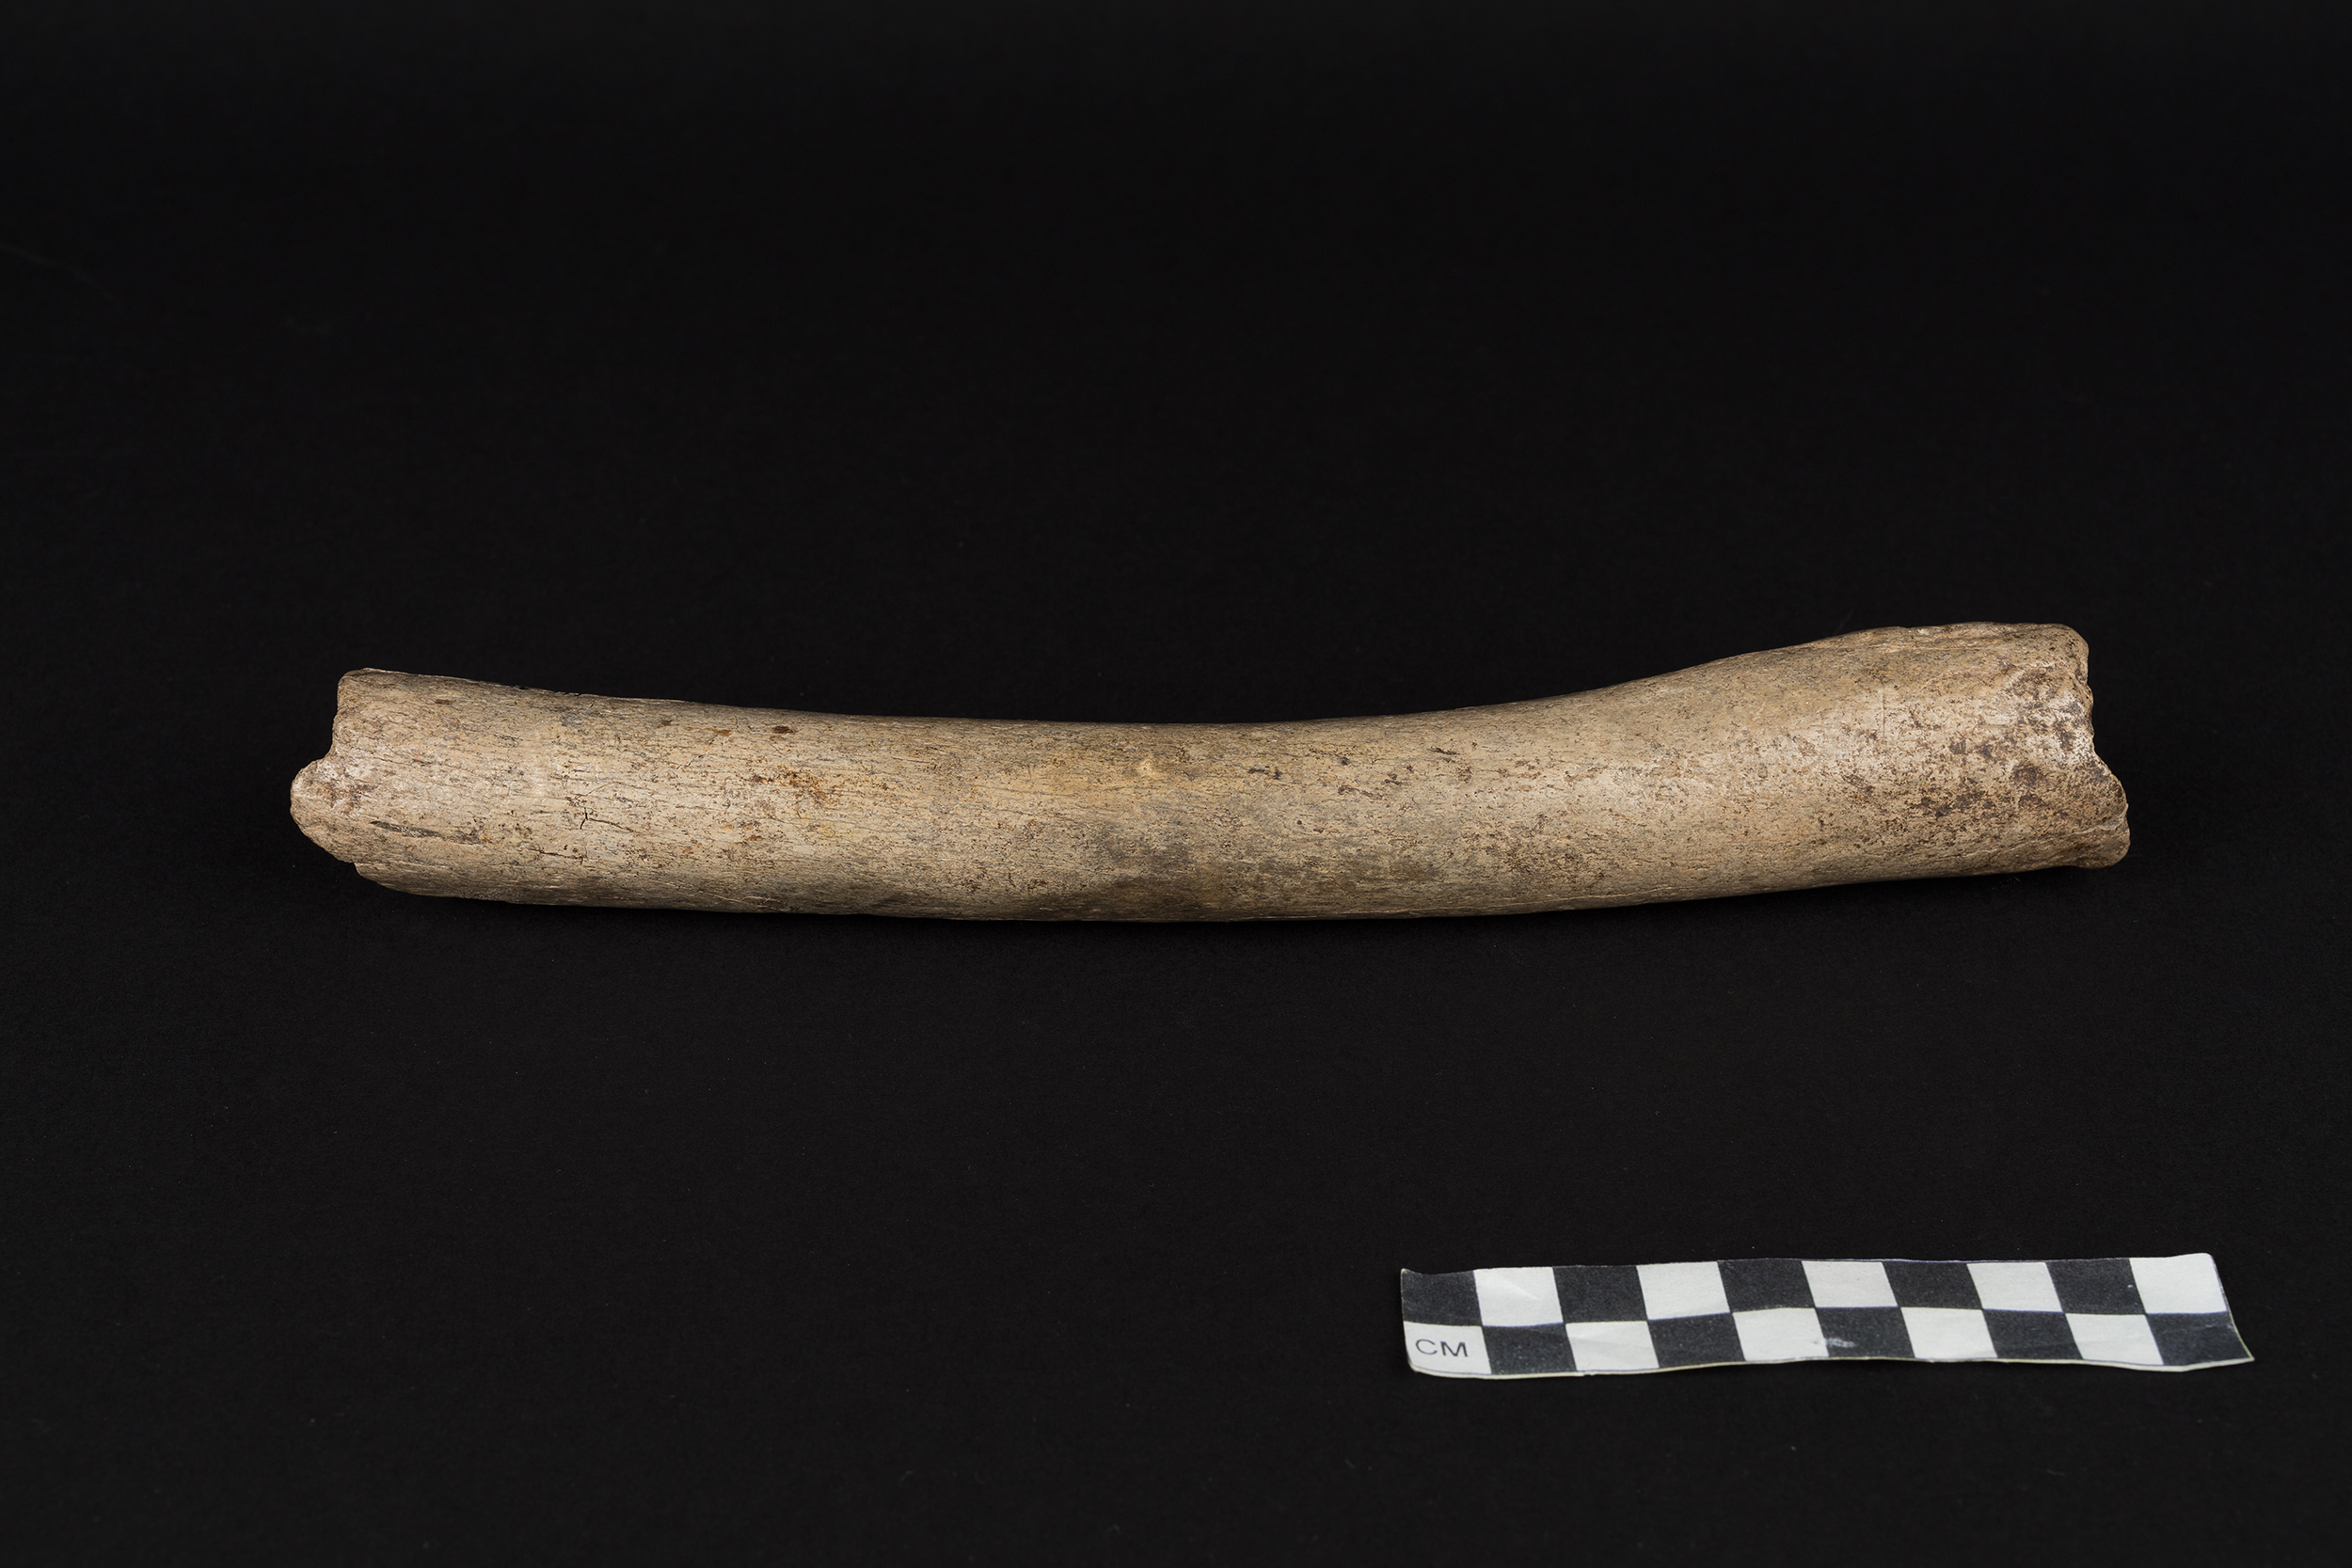 A Neanderthal thigh bone known as the Hohlenstein-Stadel femur, discovered in German in 1937.